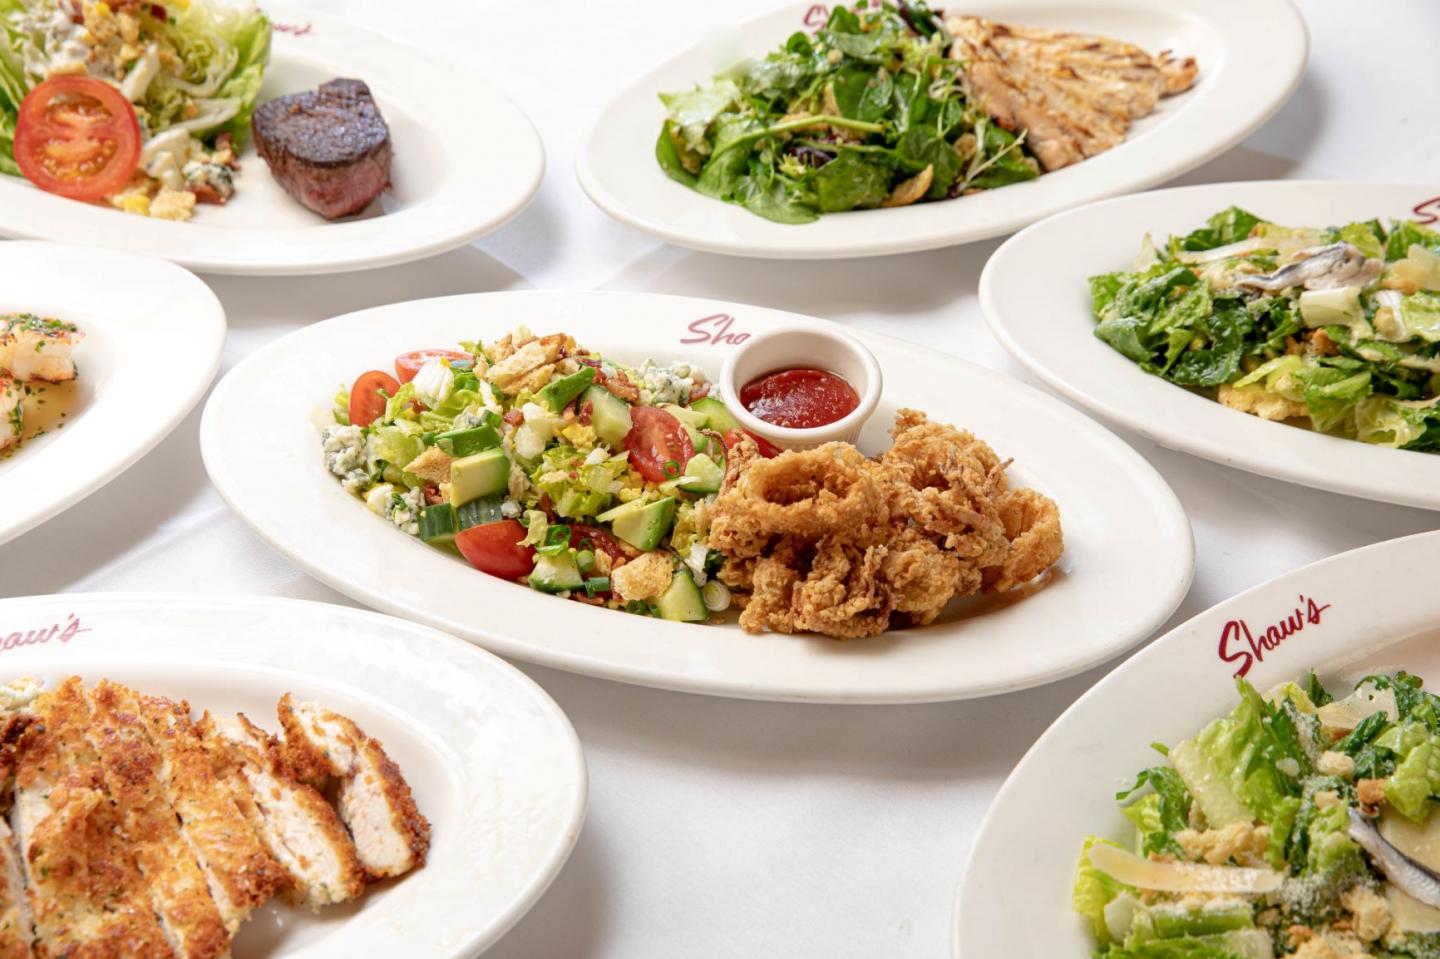 Shaw's Crabhouse salads and proteins